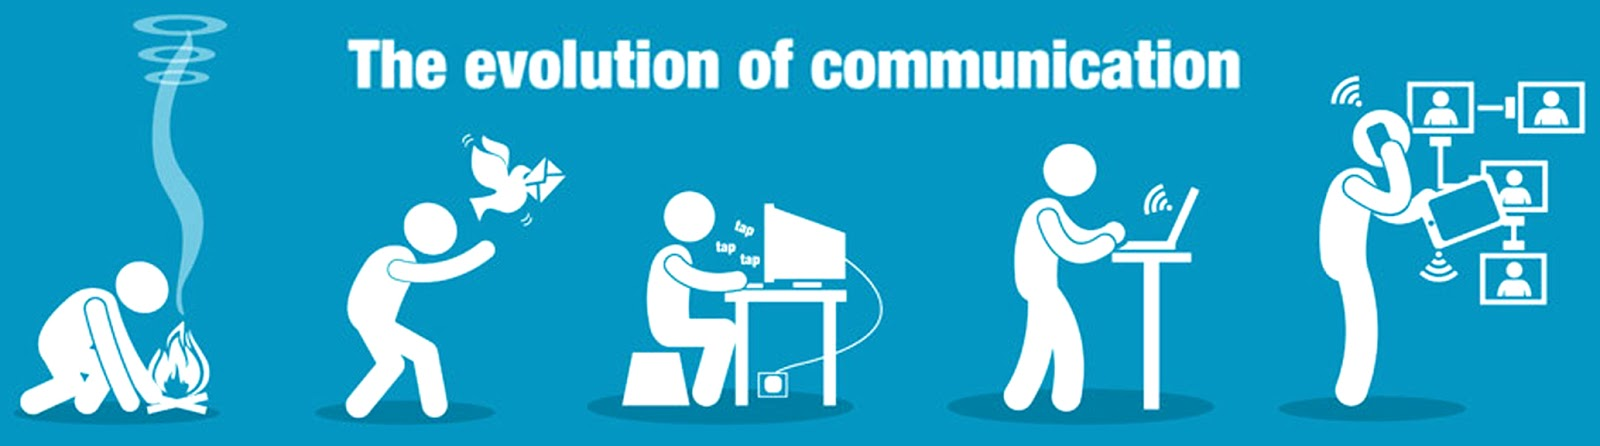 the evolution of communication essay Communication plays an important role in the development of a nation it is an integral part of development societies cannot change and develop without communication, as it is a process of social.